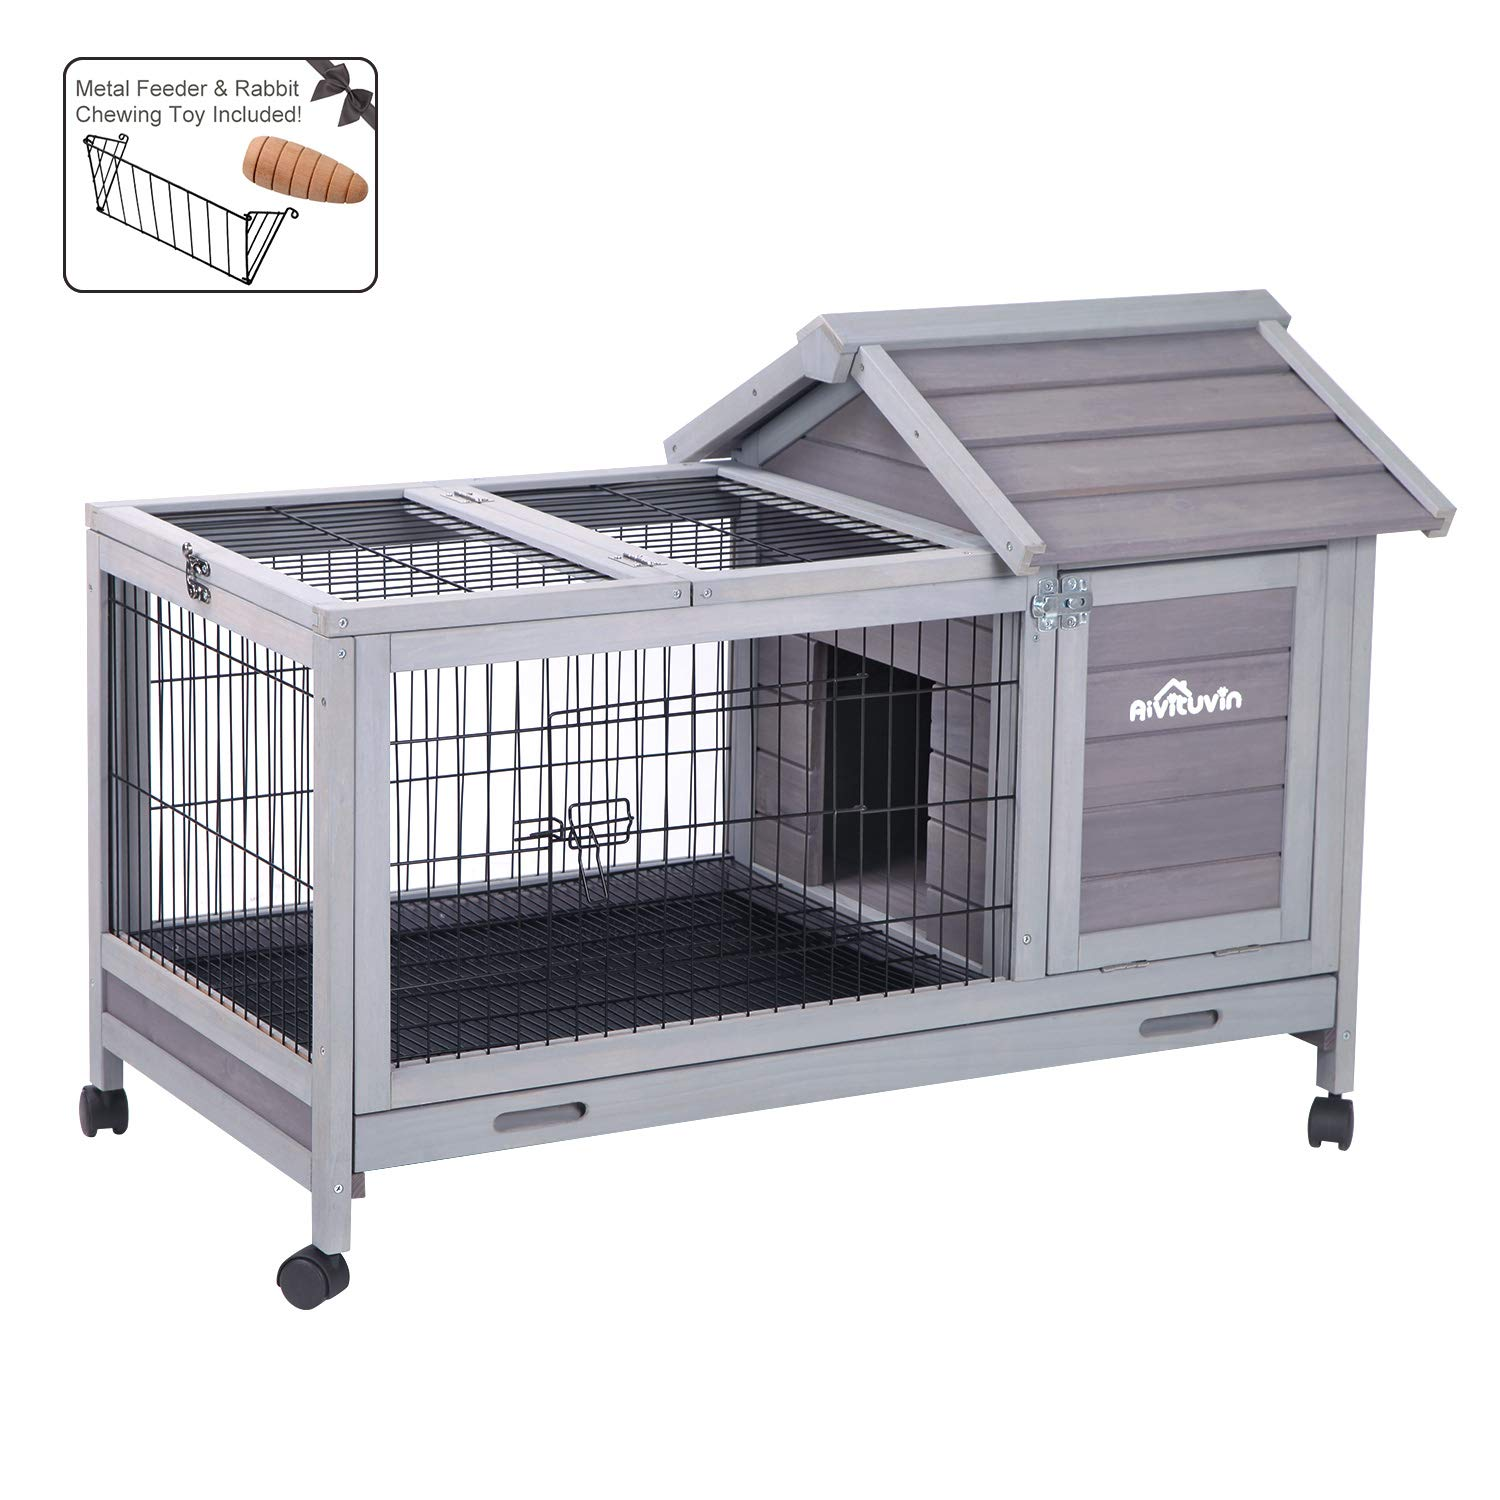 Aivituvin Wooden Rabbit Hutch with Wheels, Bunny Cage with Deeper Leakproof Tray - Upgrade with Metal Wire Floor, 40.4'' Lx23.6 Wx28.3 H by Aivituvin